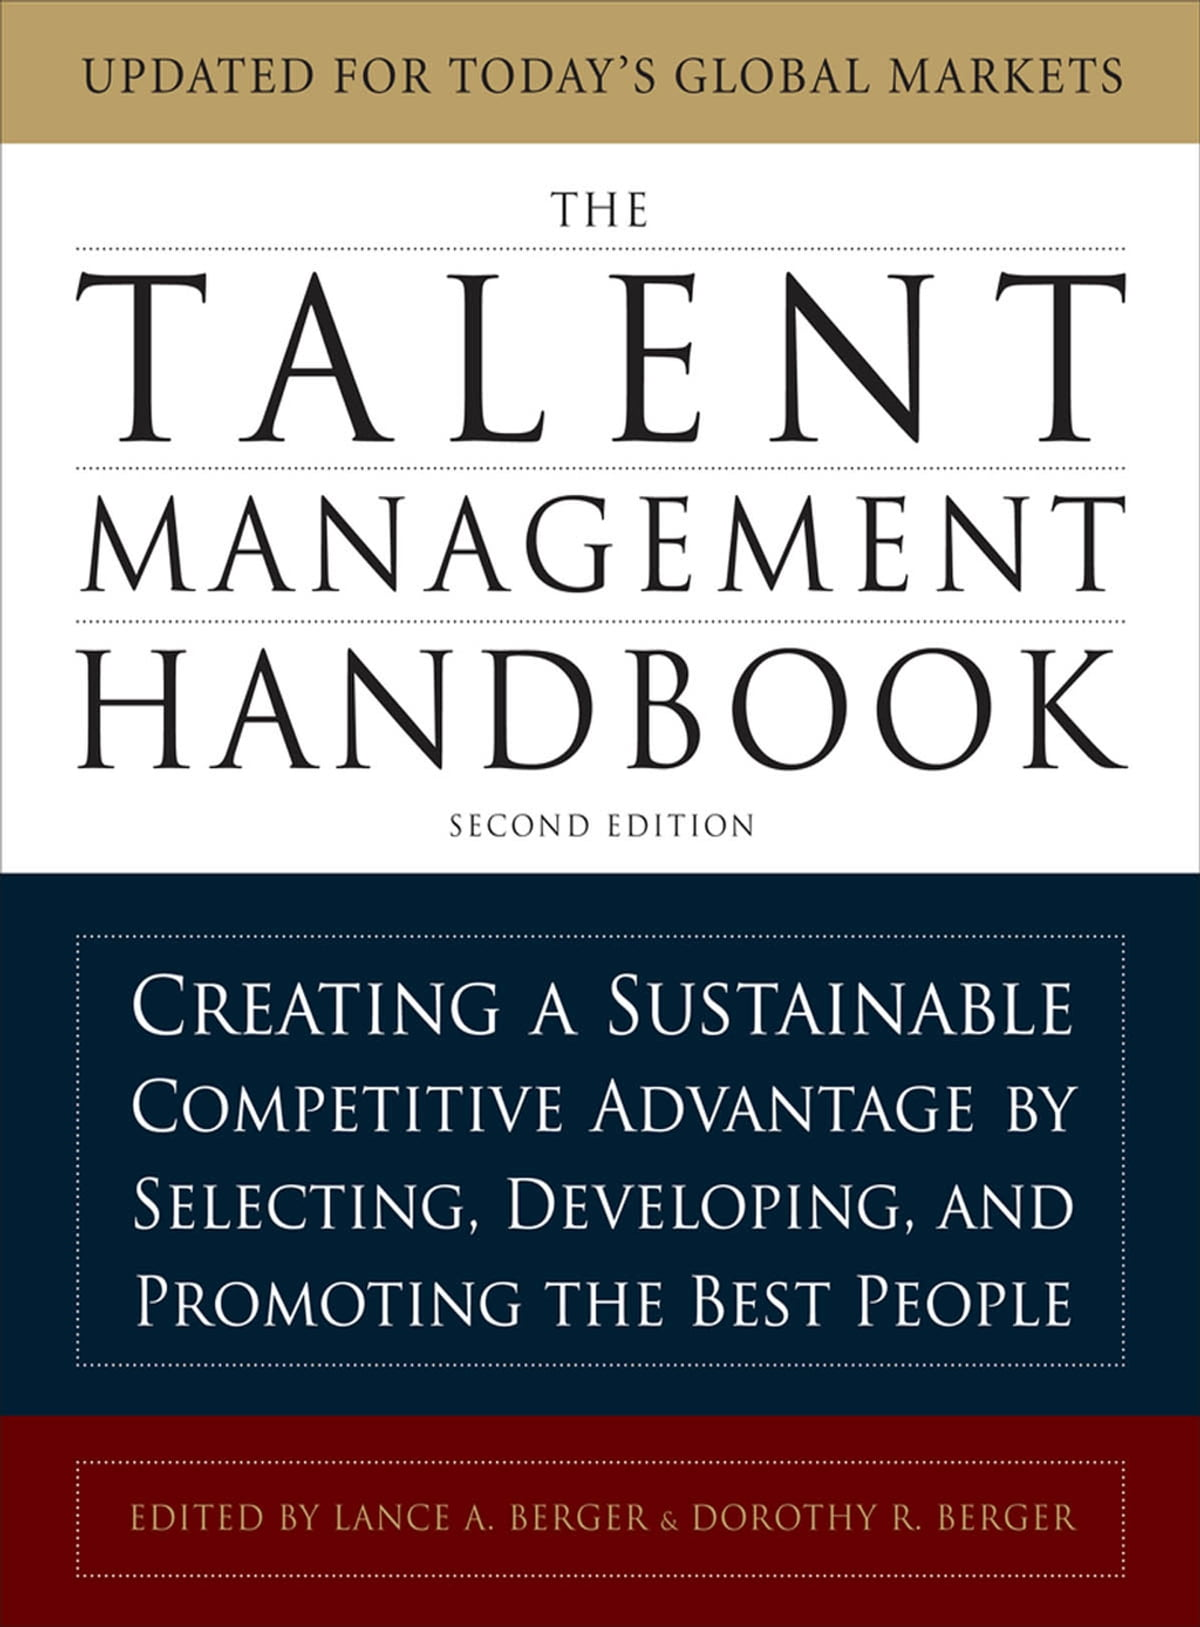 The Talent Management Handbook, Second Edition: Creating a Sustainable  Competitive Advantage by Selecting, Developing, and Promoting the Best  People eBook ...